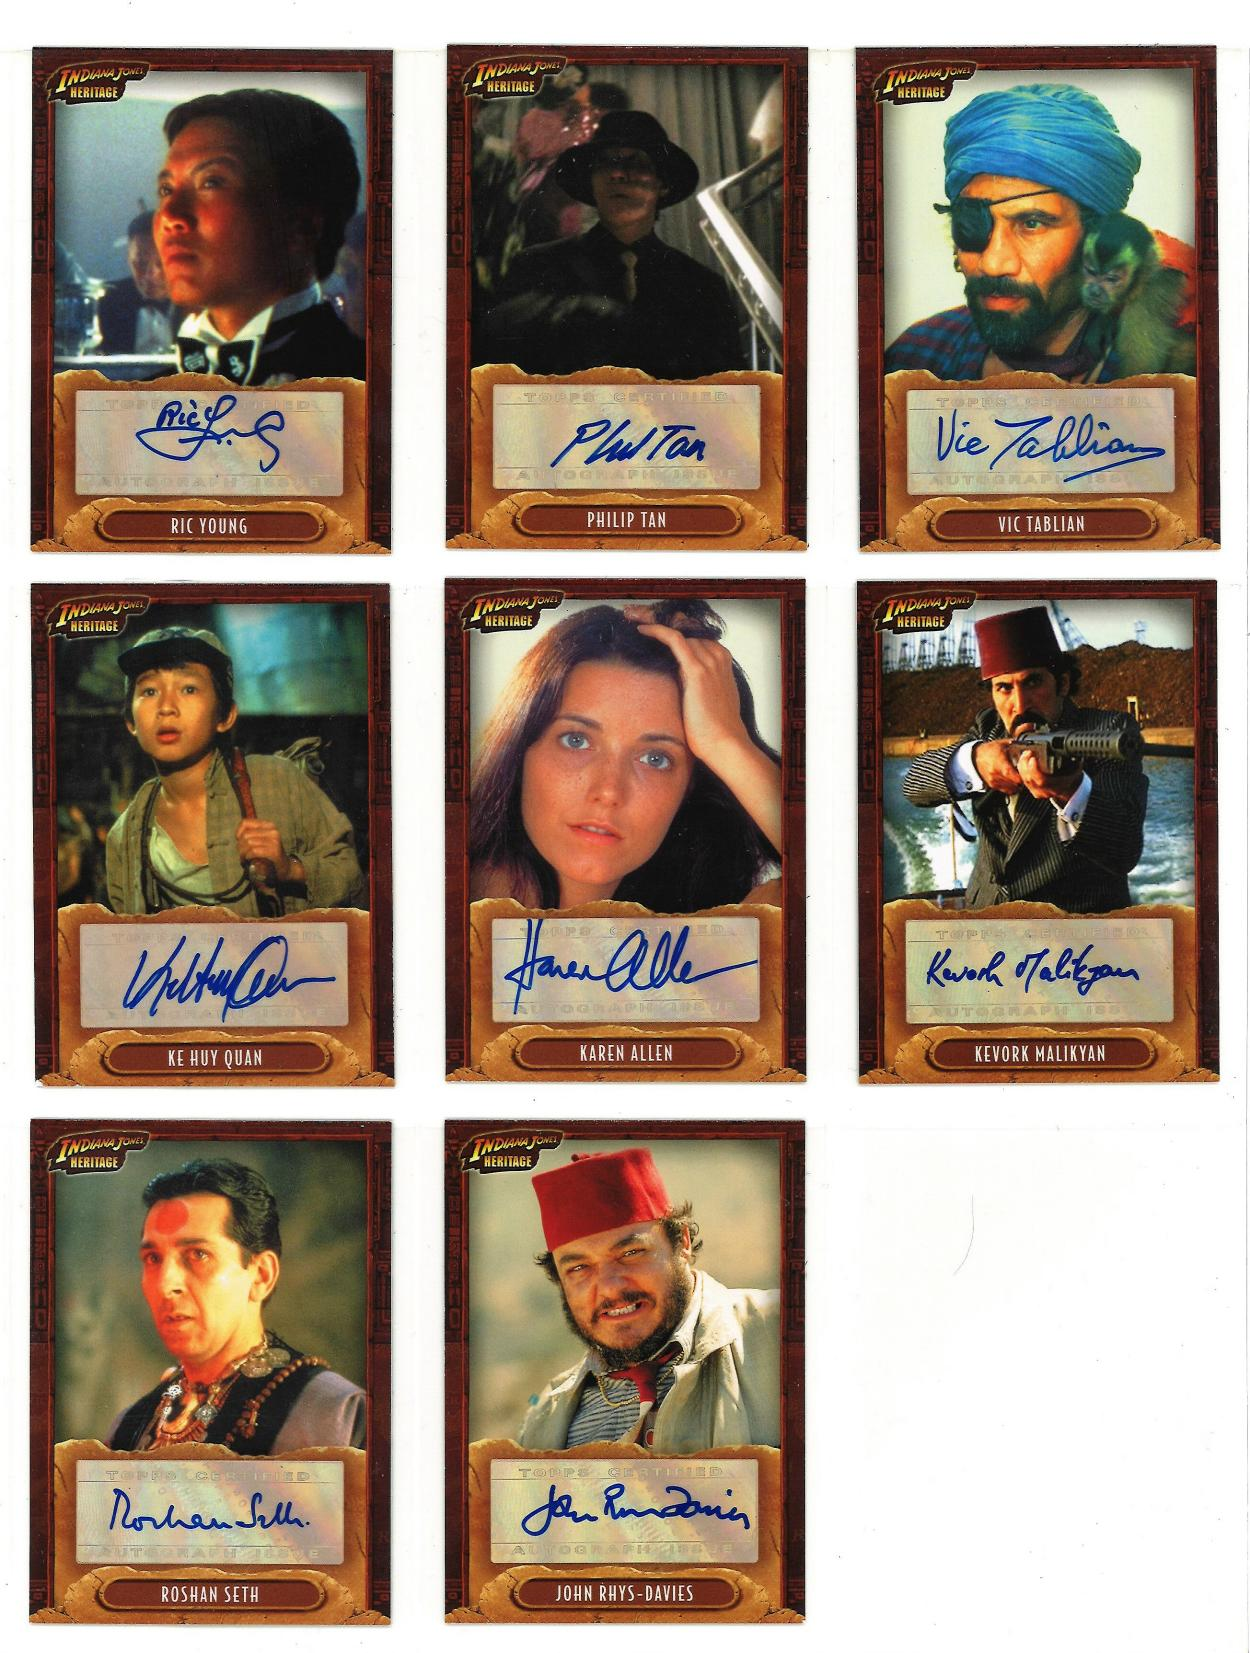 Lot 2 - Indiana Jones Heritage Limited edition collection of 17 autographed Topps trading cards. Each card